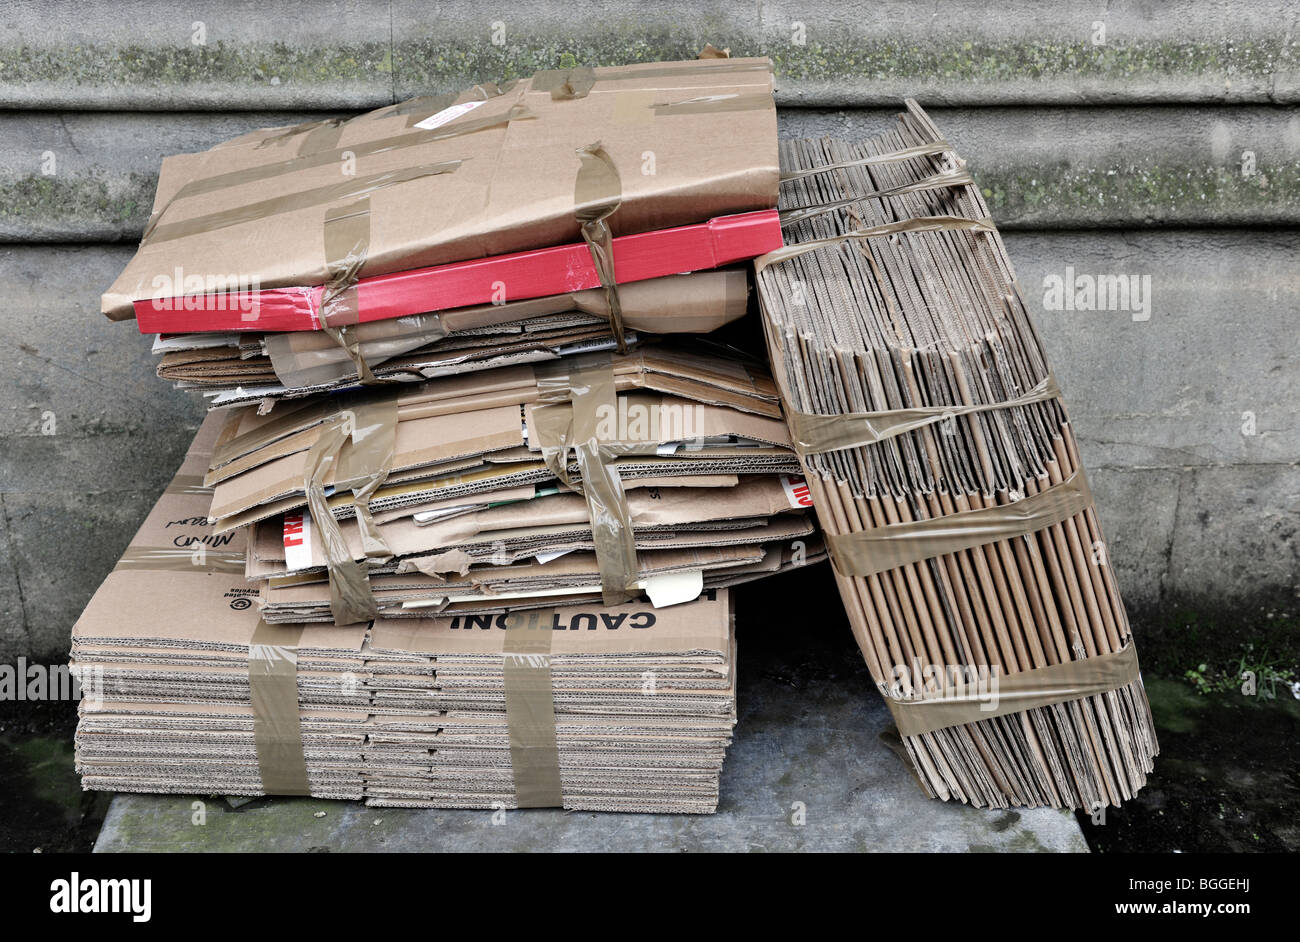 cardboard box recycling - Stock Image